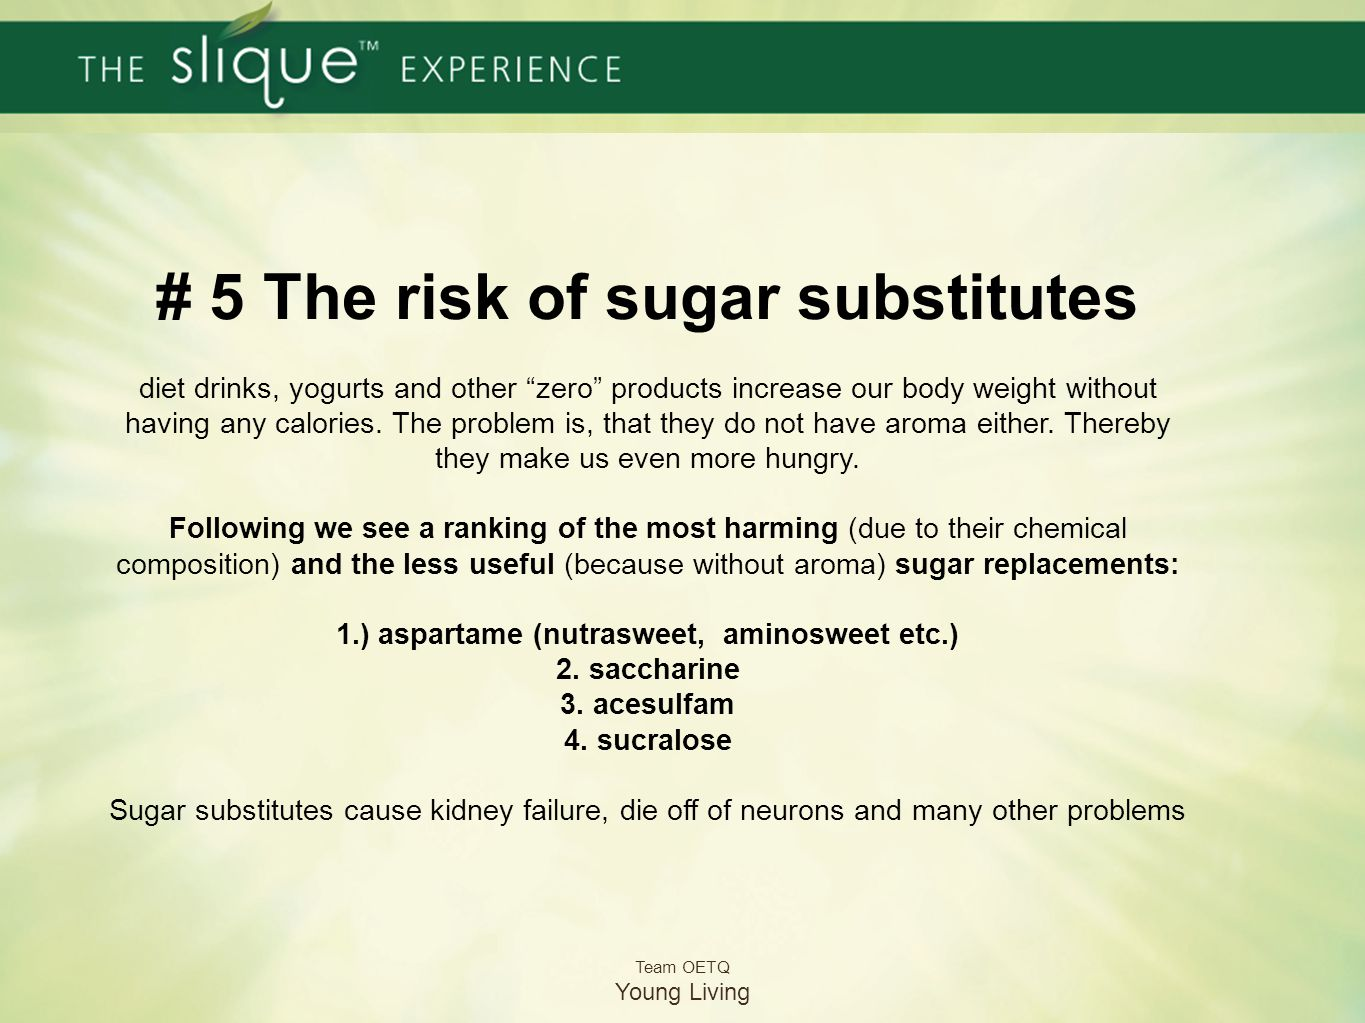 # 5 The risk of sugar substitutes diet drinks, yogurts and other zero products increase our body weight without having any calories. The problem is, that they do not have aroma either. Thereby they make us even more hungry. Following we see a ranking of the most harming (due to their chemical composition) and the less useful (because without aroma) sugar replacements: 1.) aspartame (nutrasweet, aminosweet etc.) 2. saccharine 3. acesulfam 4. sucralose Sugar substitutes cause kidney failure, die off of neurons and many other problems